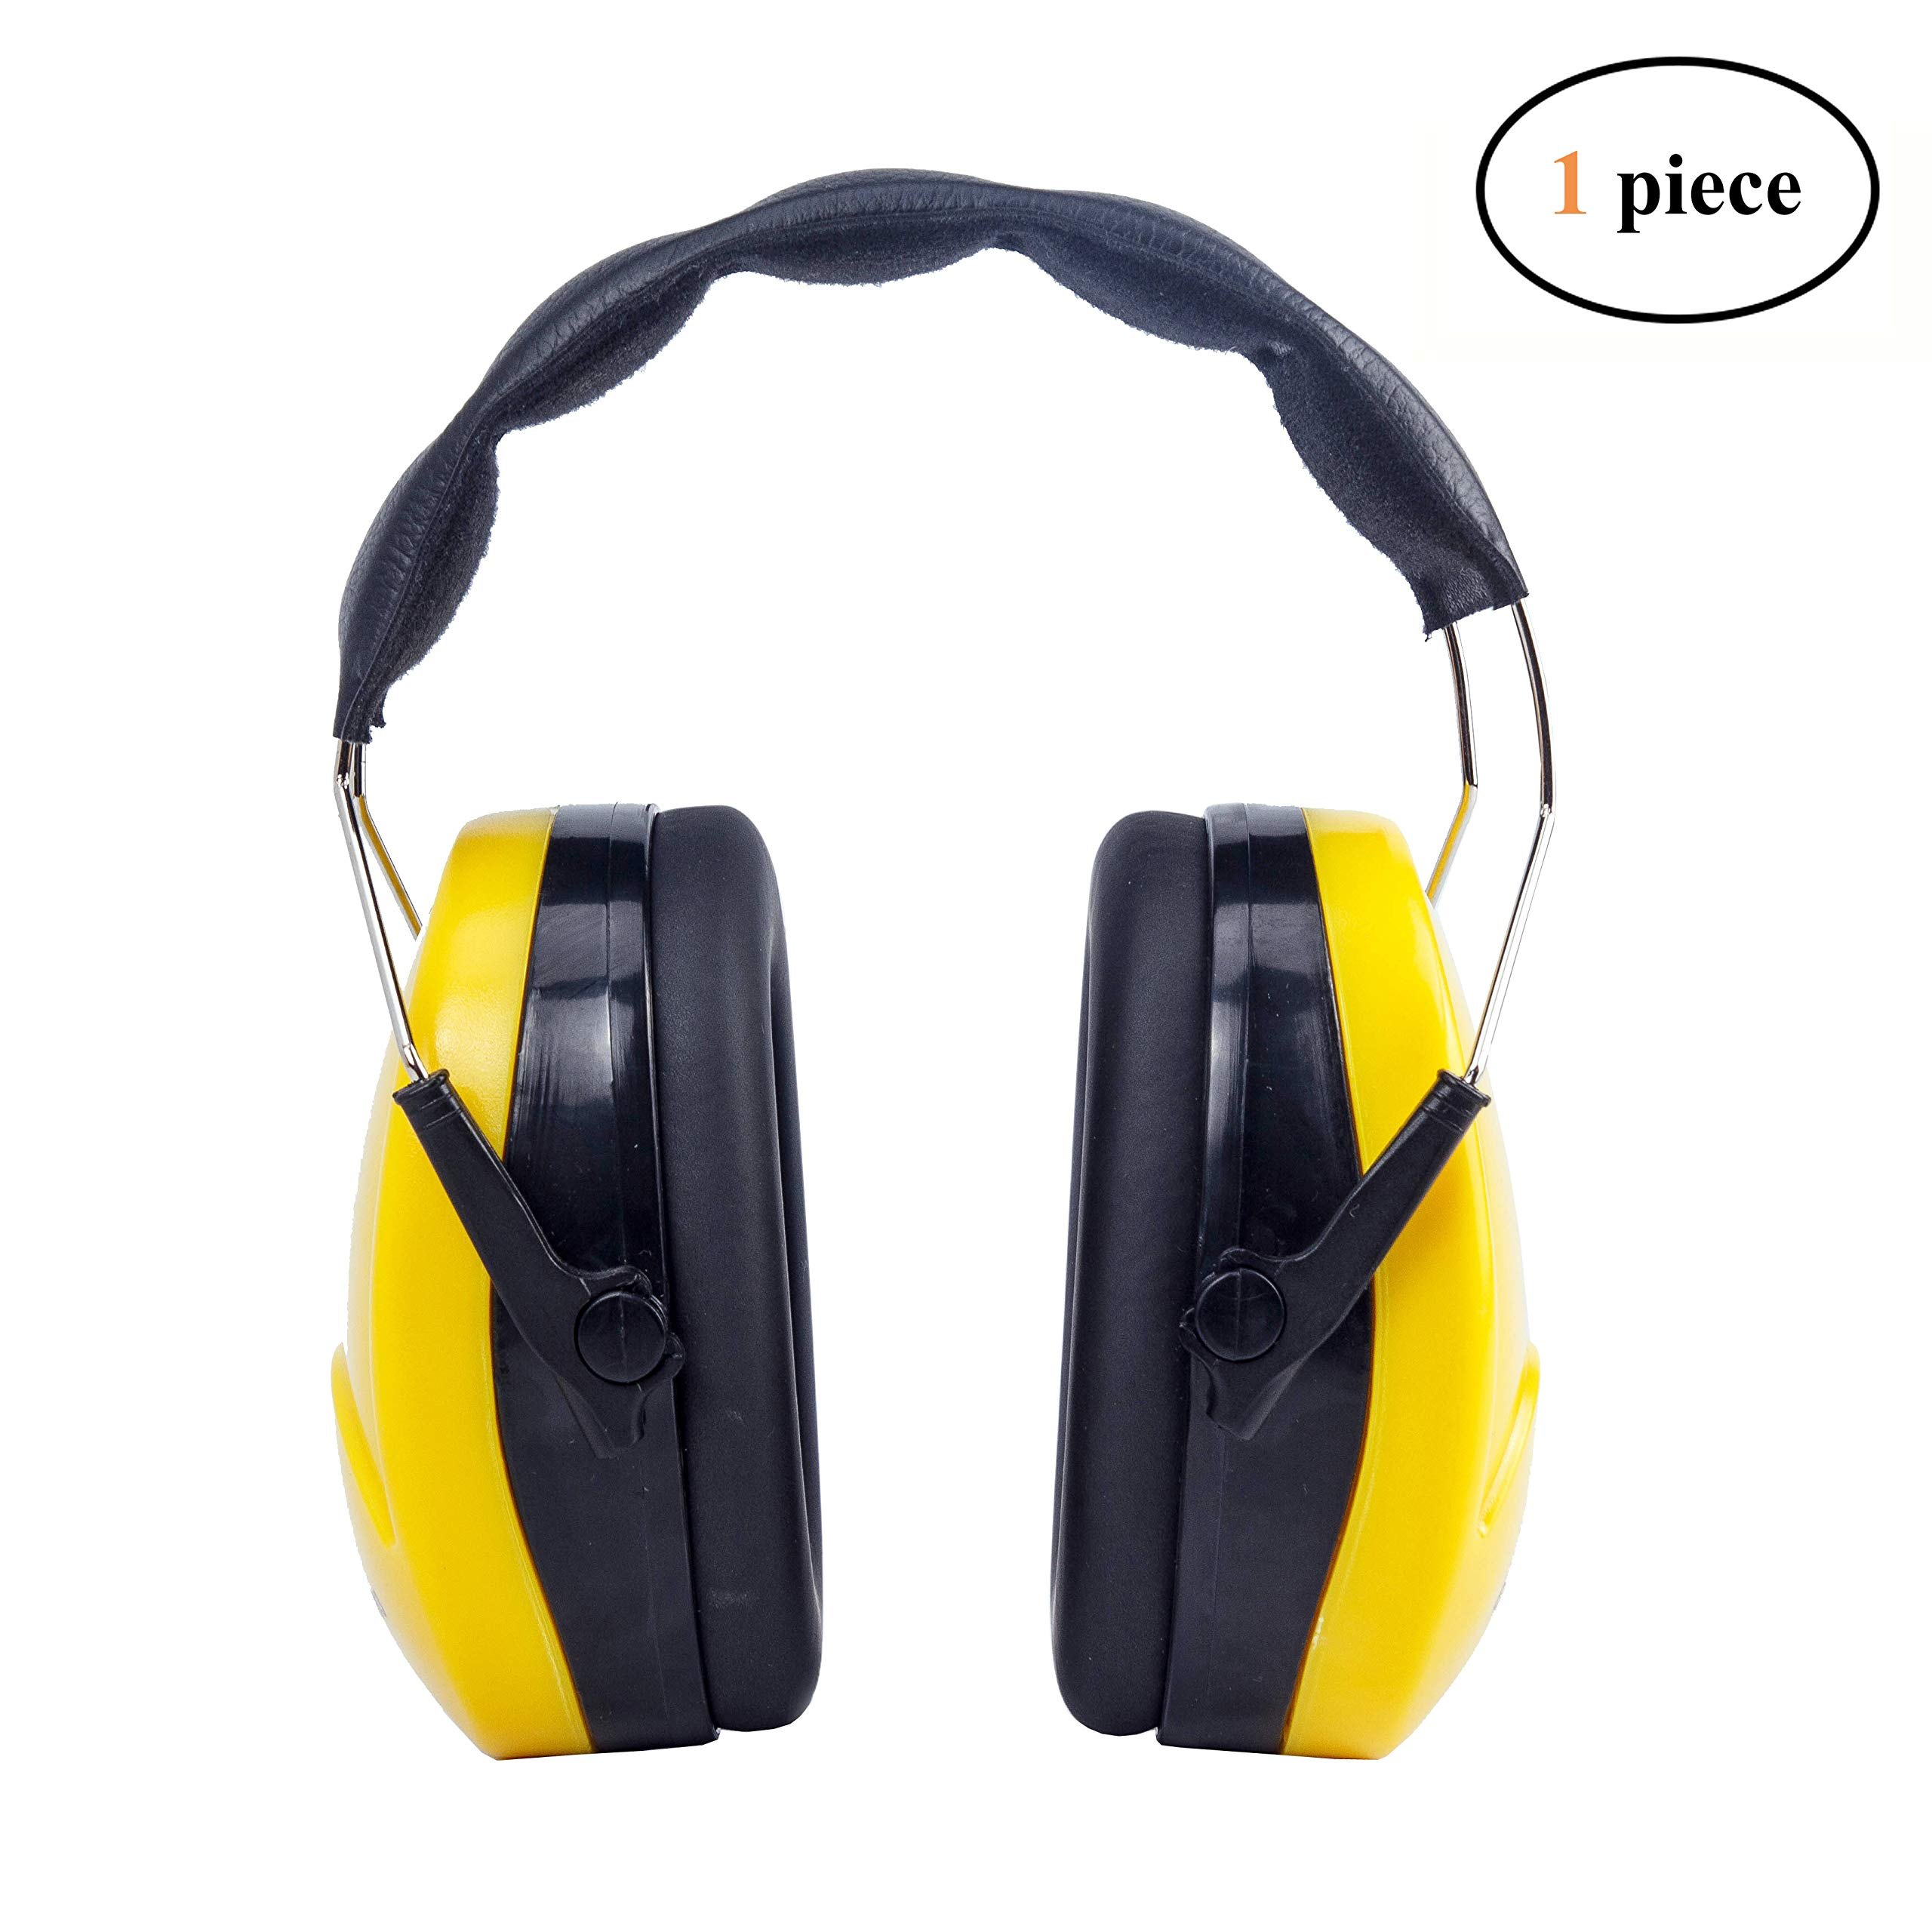 Golden Scute Noise Cancelling Adjustable Safety Ear Muffs Padded Headband Soft Ear Cushions, Noise Protection, Professional Ear Defenders High Noise Reduction Rating